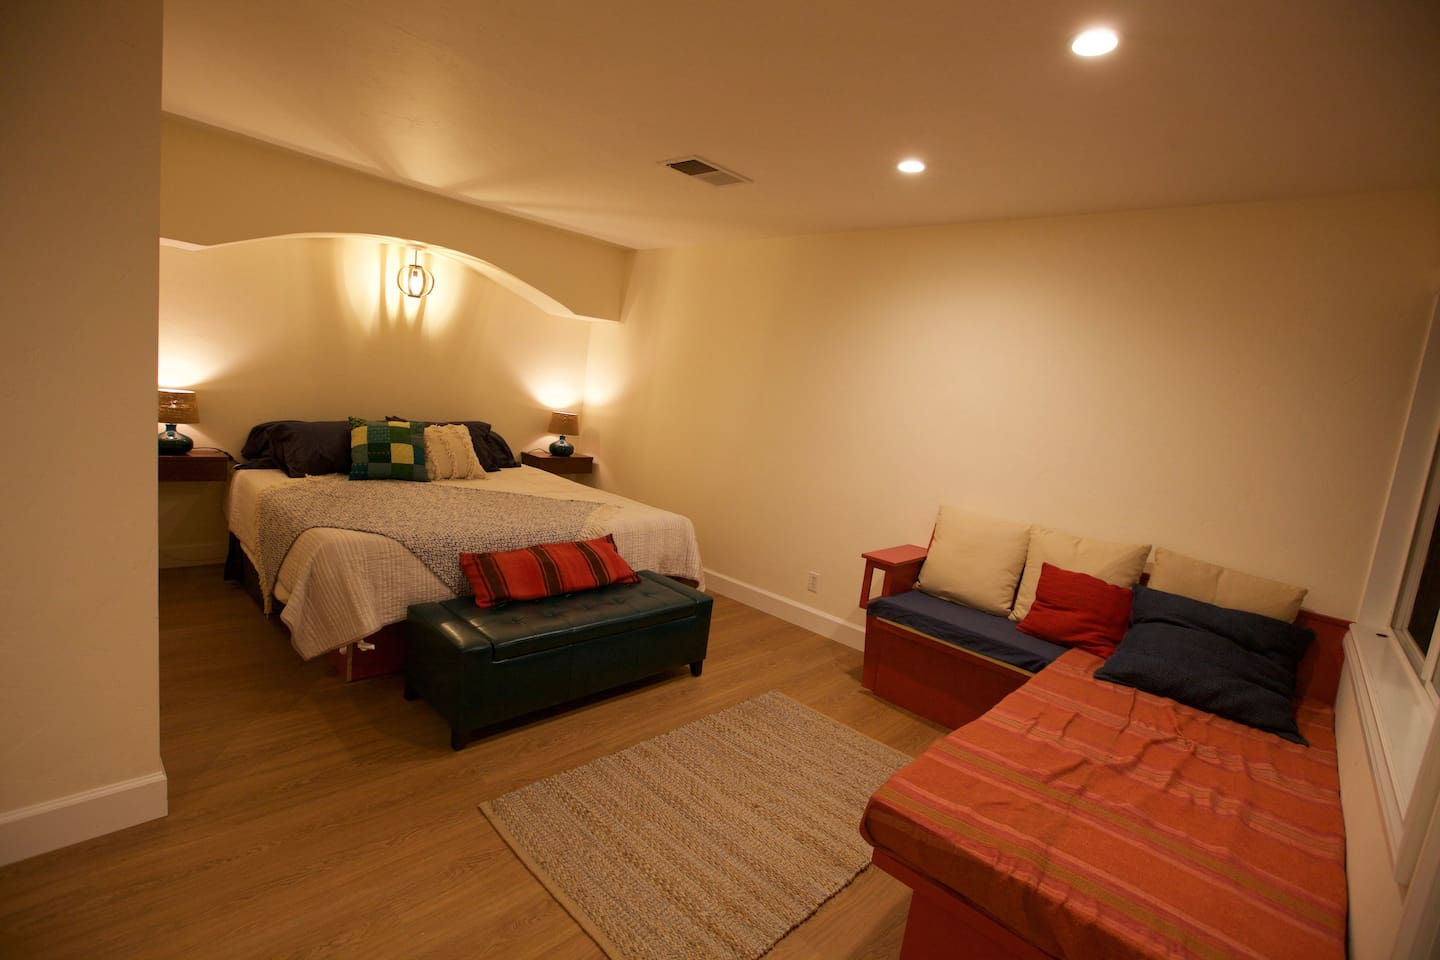 Living space and king size bed.